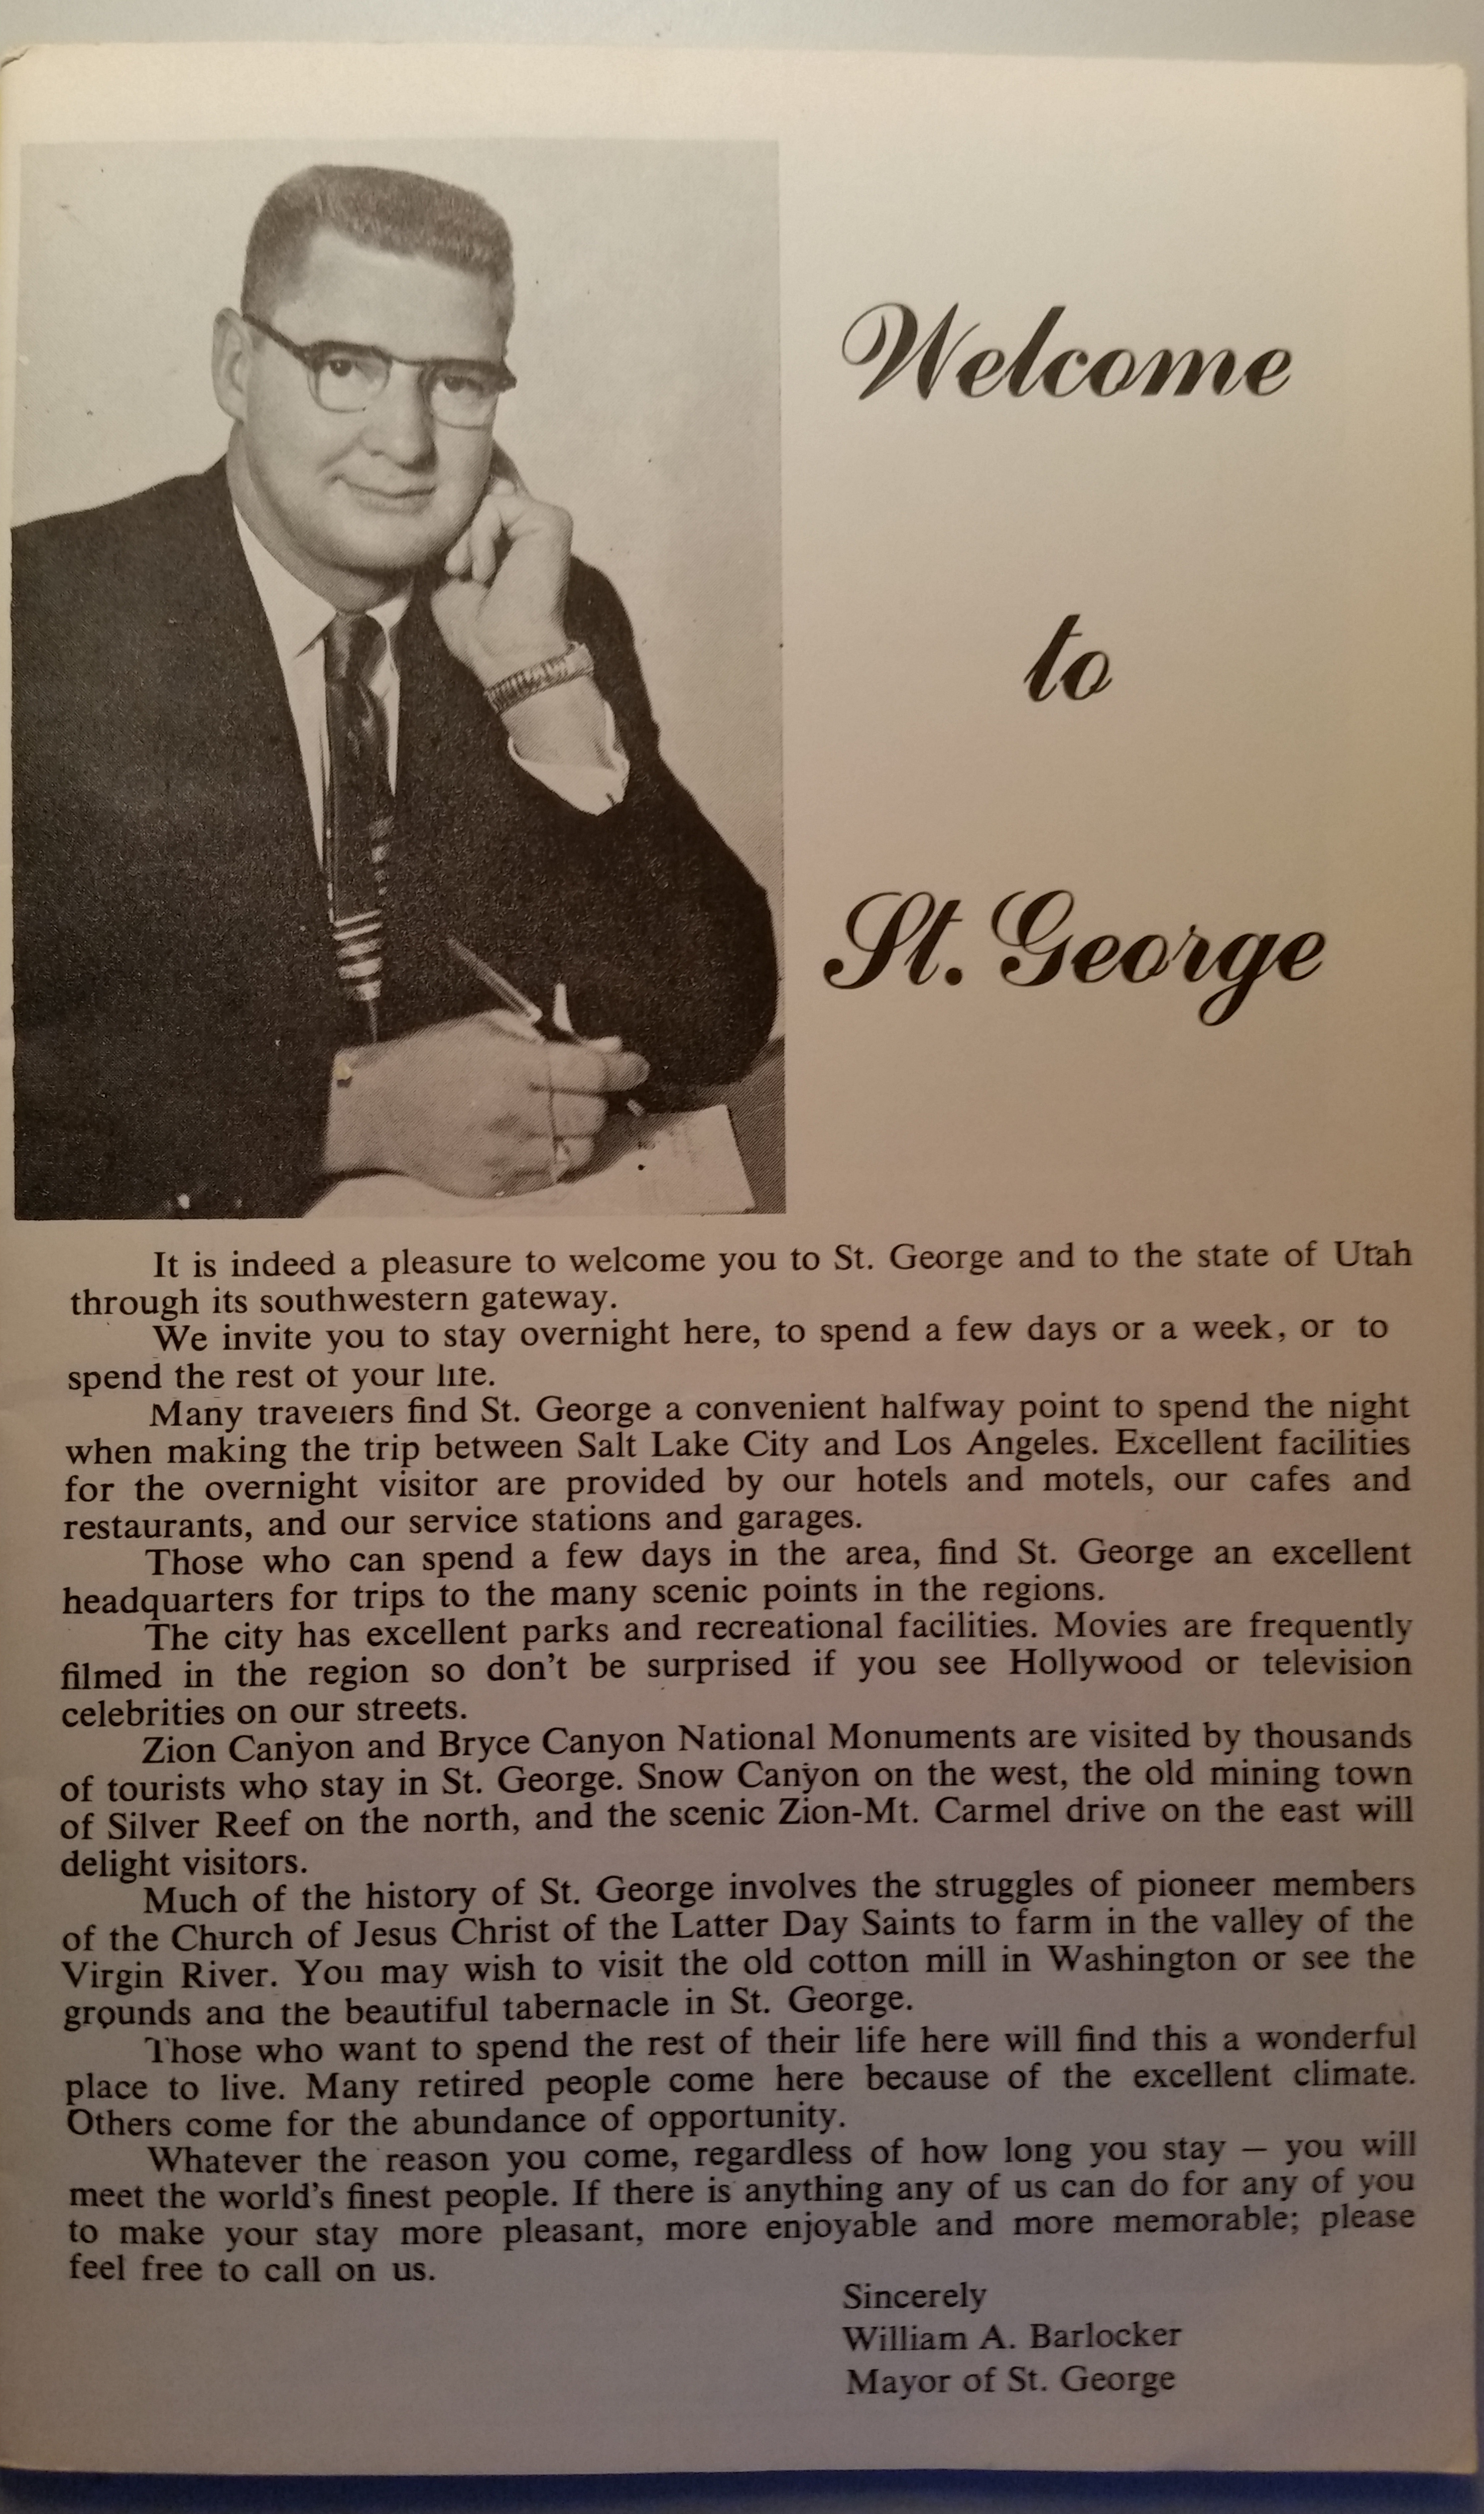 A message from St. George Mayor Bill Barlocker in a St. George City Chamber of Commerce publication, circa 1959-1960 | Photo courtesy of Susan Crook, St. George News